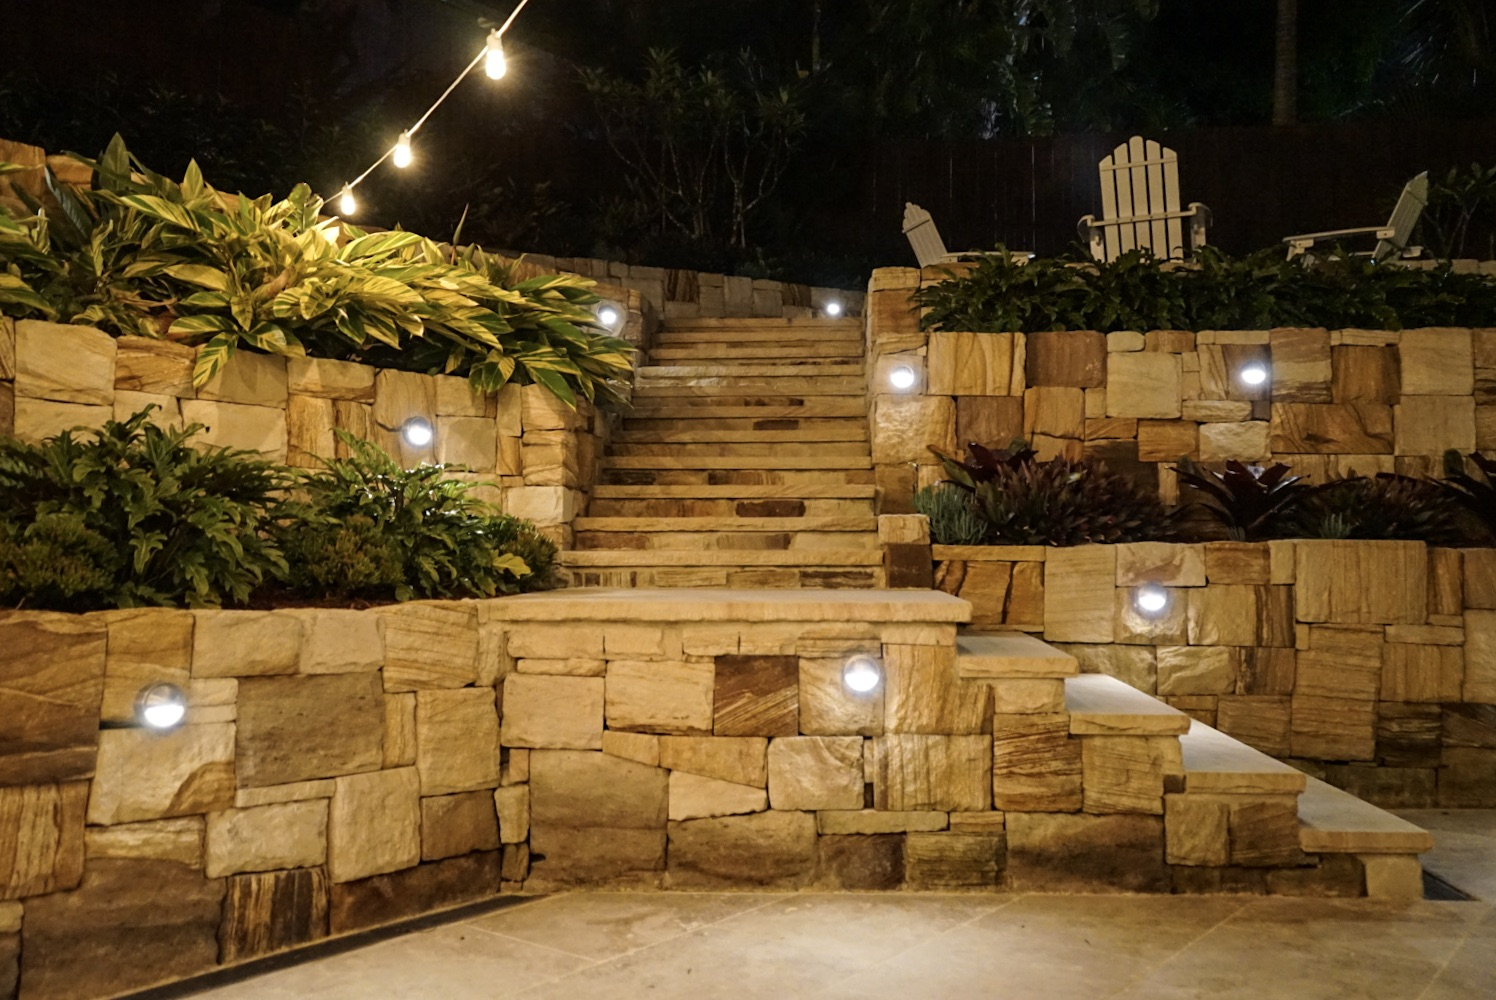 Sandstone Retaining Walls and Stairs